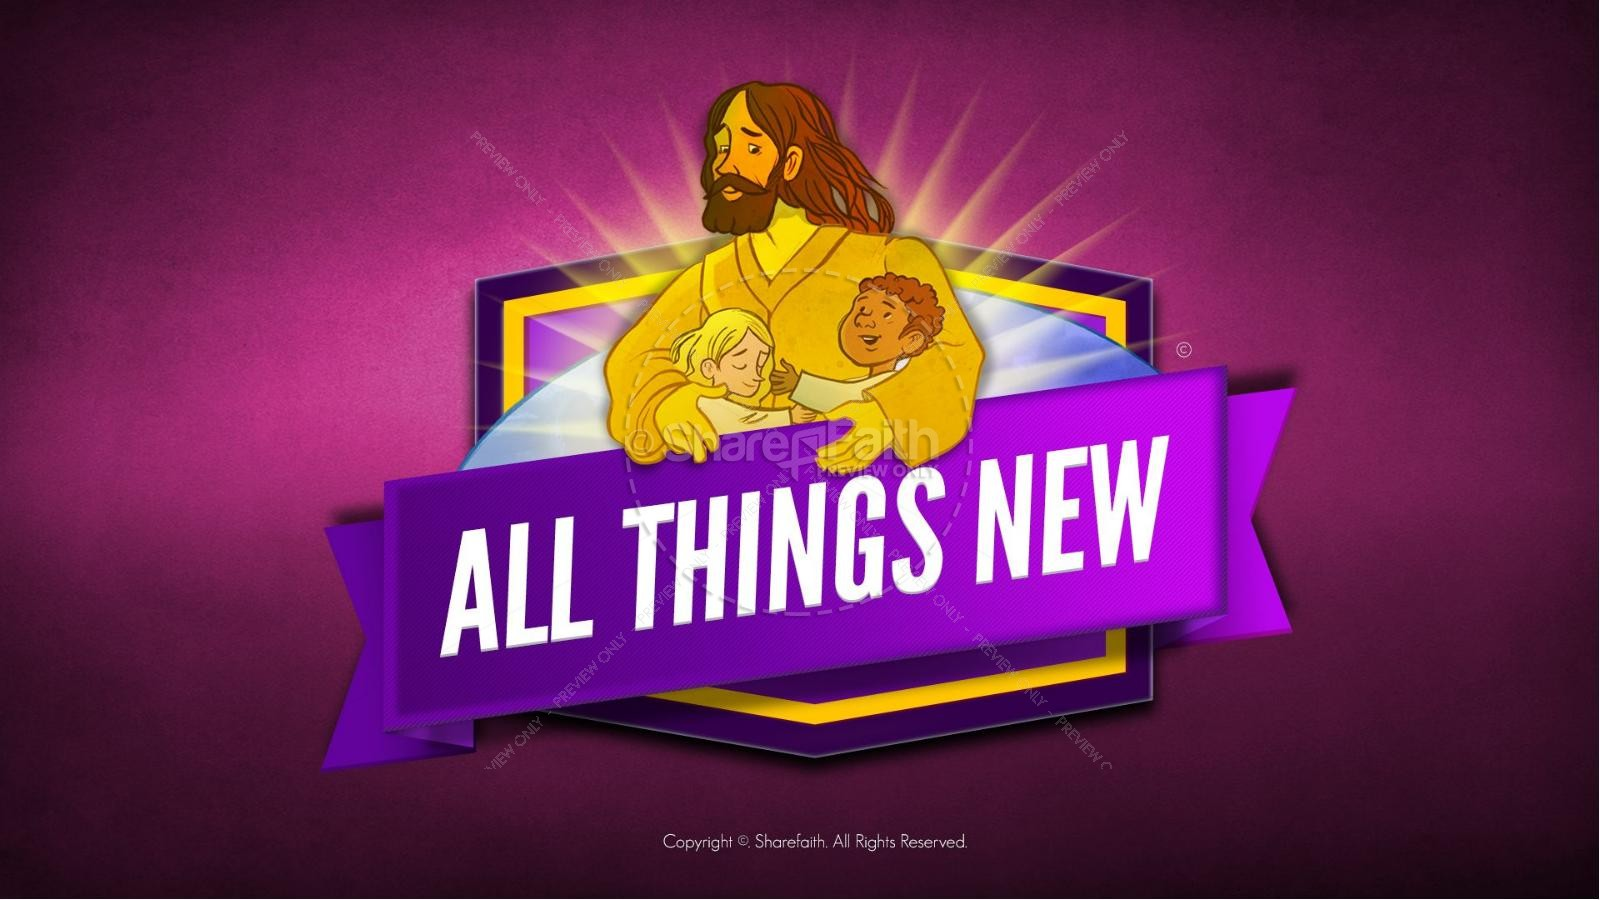 Revelation 21 All Things New Kids Bible Story